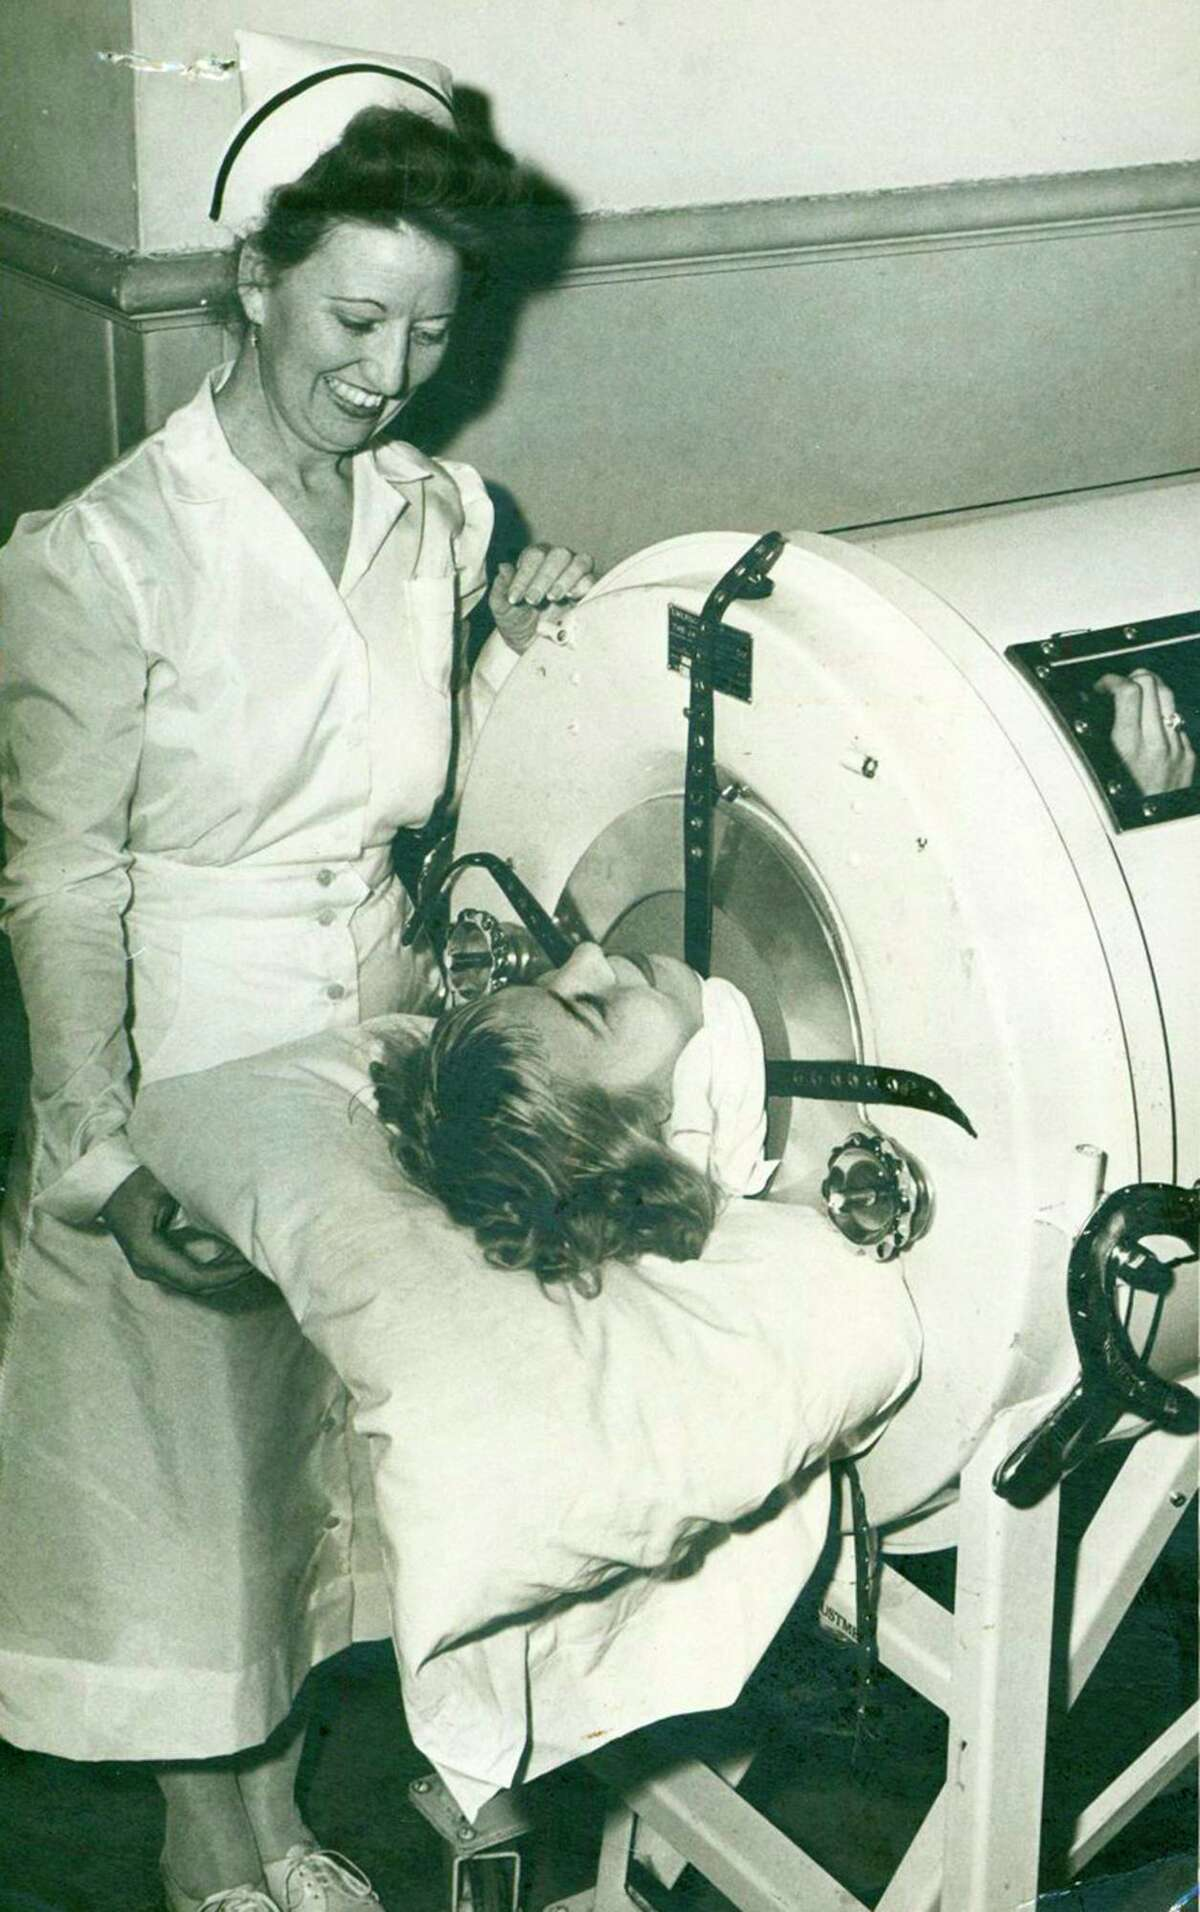 Della Barron, 17-year-old polio patient, spent nearly two weeks in one of the Robert B. Green Hospital's iron lungs in 1948. At her side is Supervisor Josephine Ricks. The iron lung helped victims of the potentially deadly virus breathe.